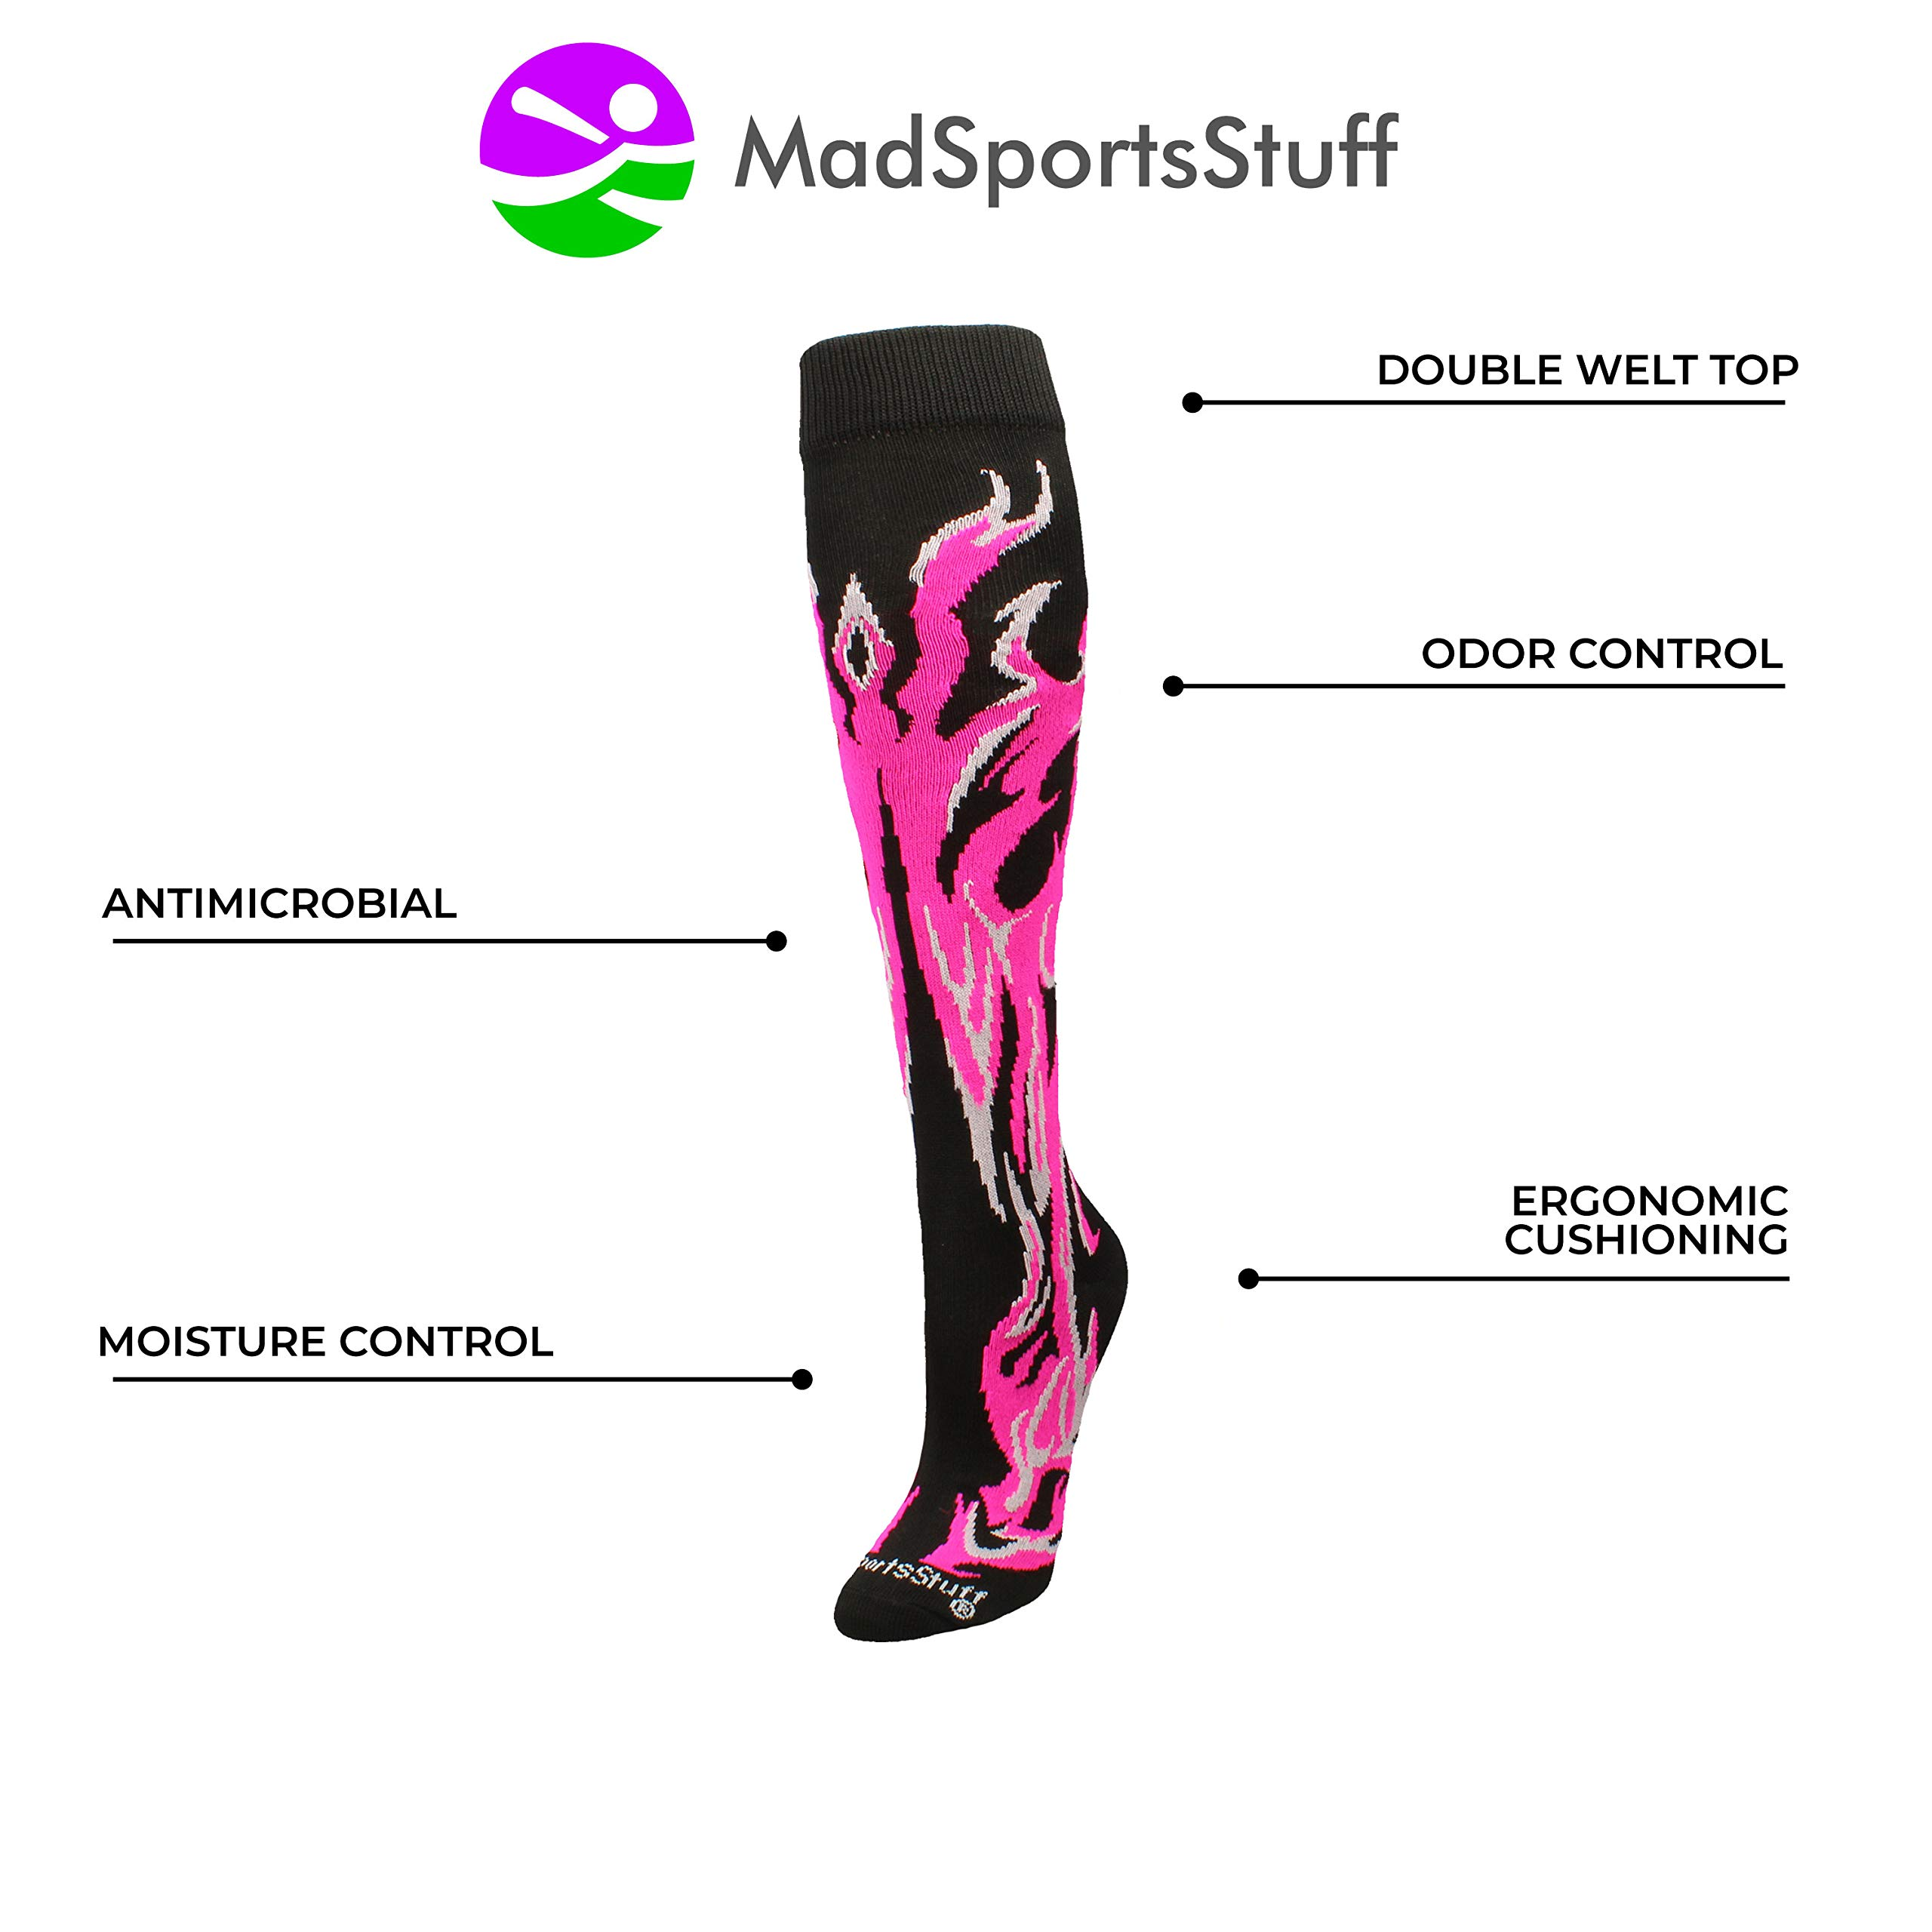 MadSportsStuff Flame Socks Athletic Over The Calf Socks (Black/Neon Pink/Pale Pink, Small) by MadSportsStuff (Image #3)